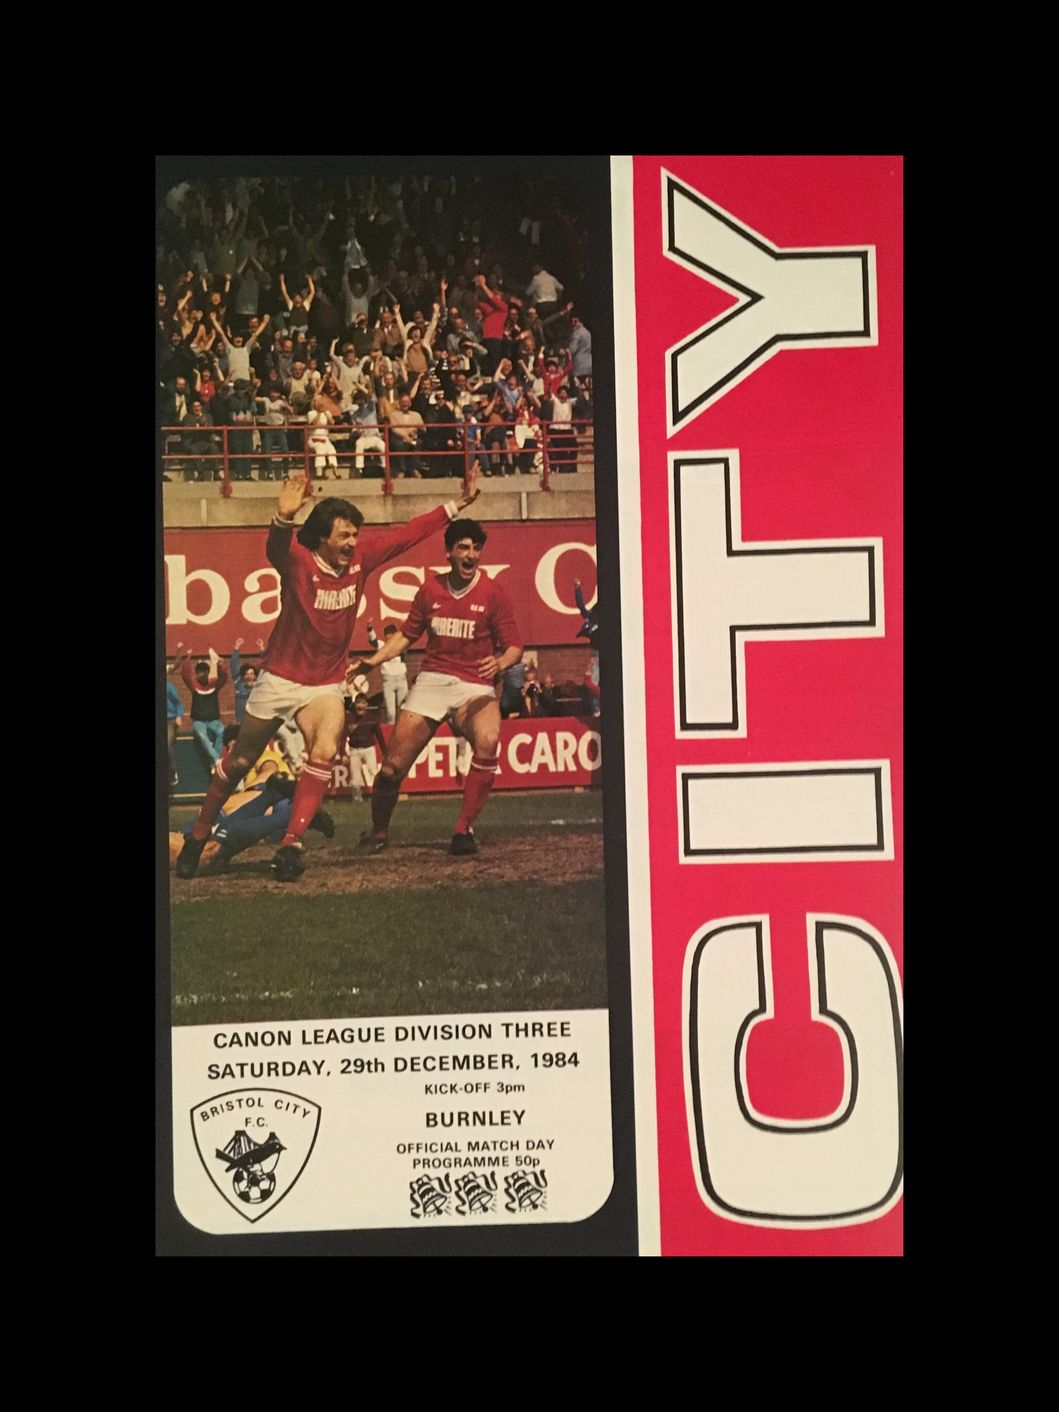 Bristol City v Burnley 29-12-84 Programme